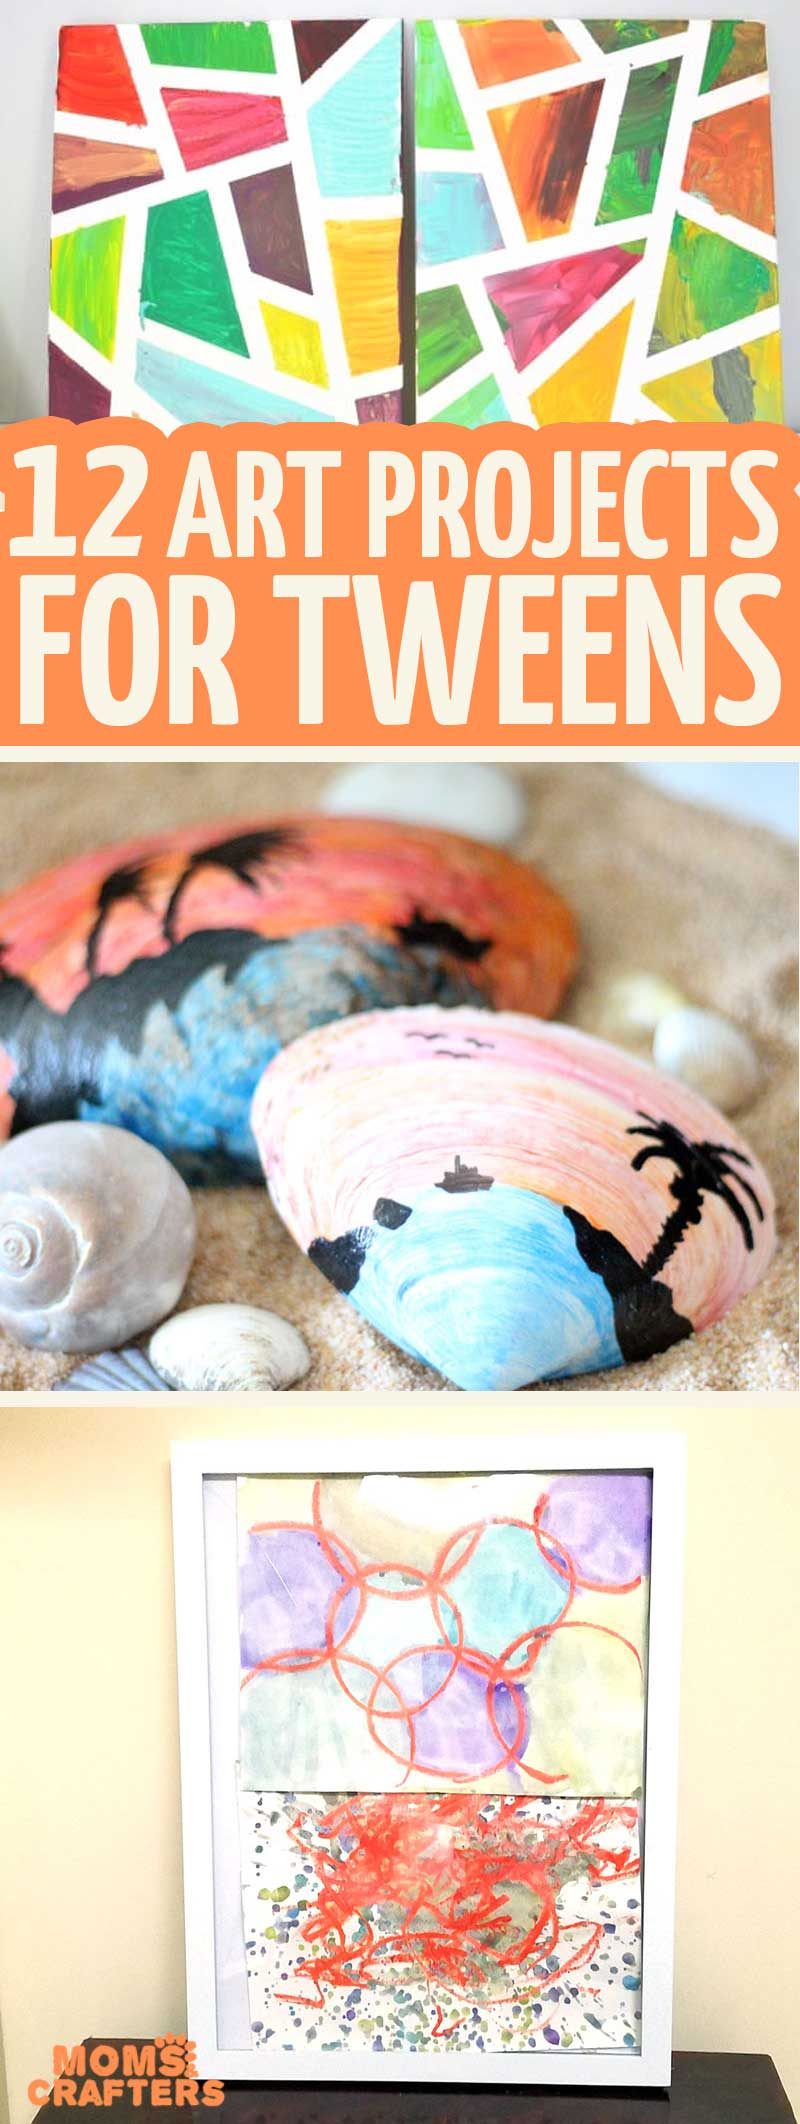 12 Art Projects for Tweens and Teens